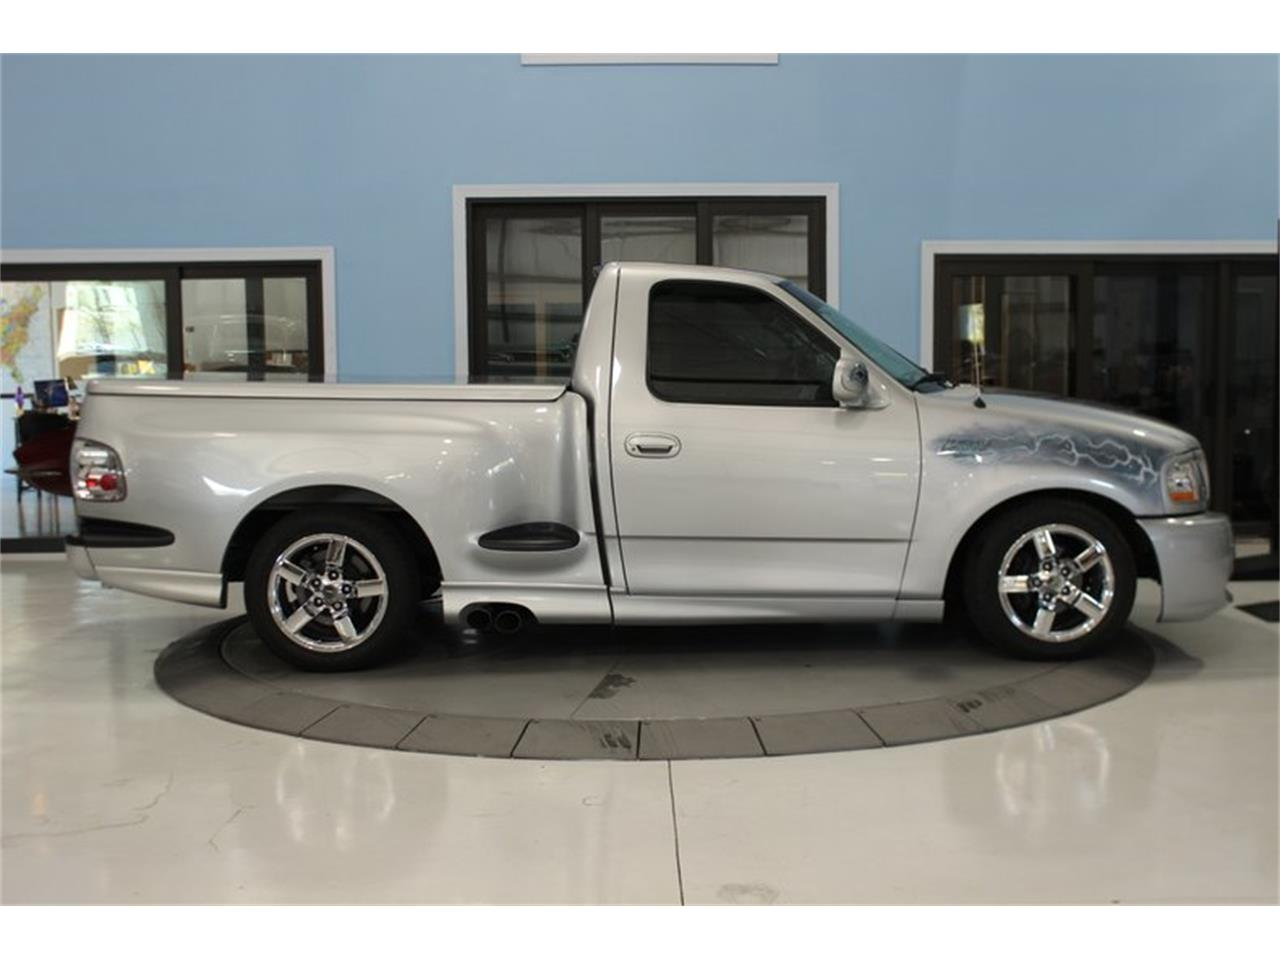 2002 Ford Lightning for sale in Palmetto, FL – photo 6